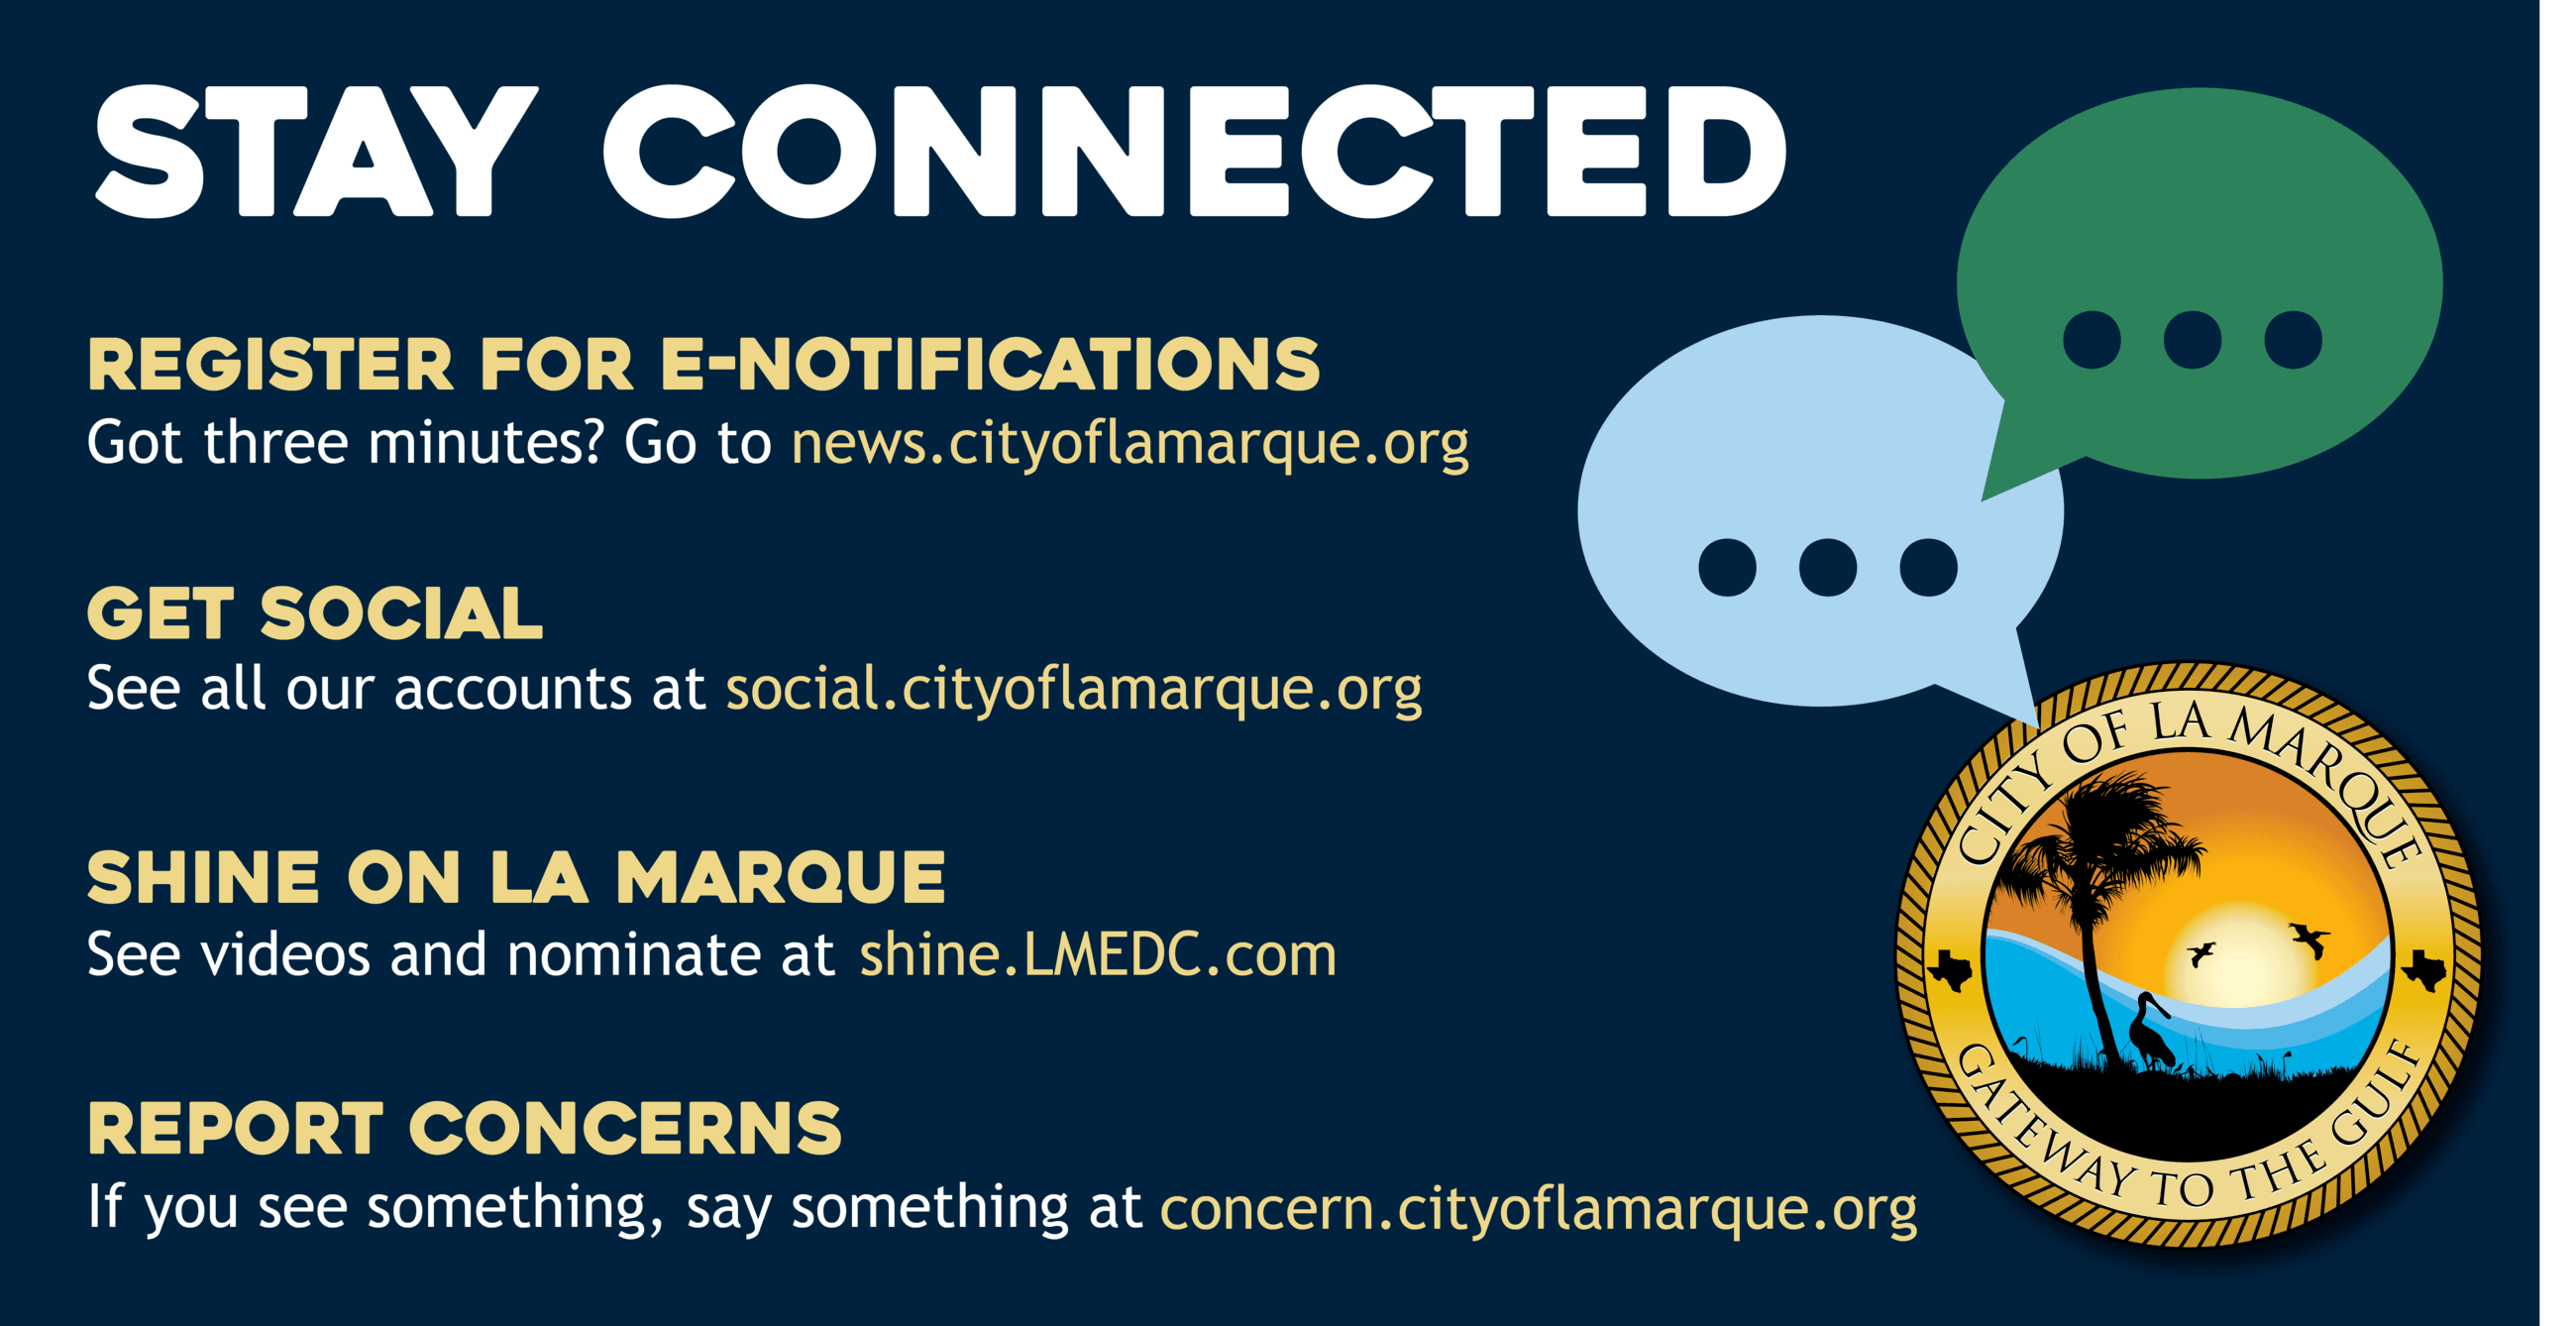 Get Connected with City of La Marque